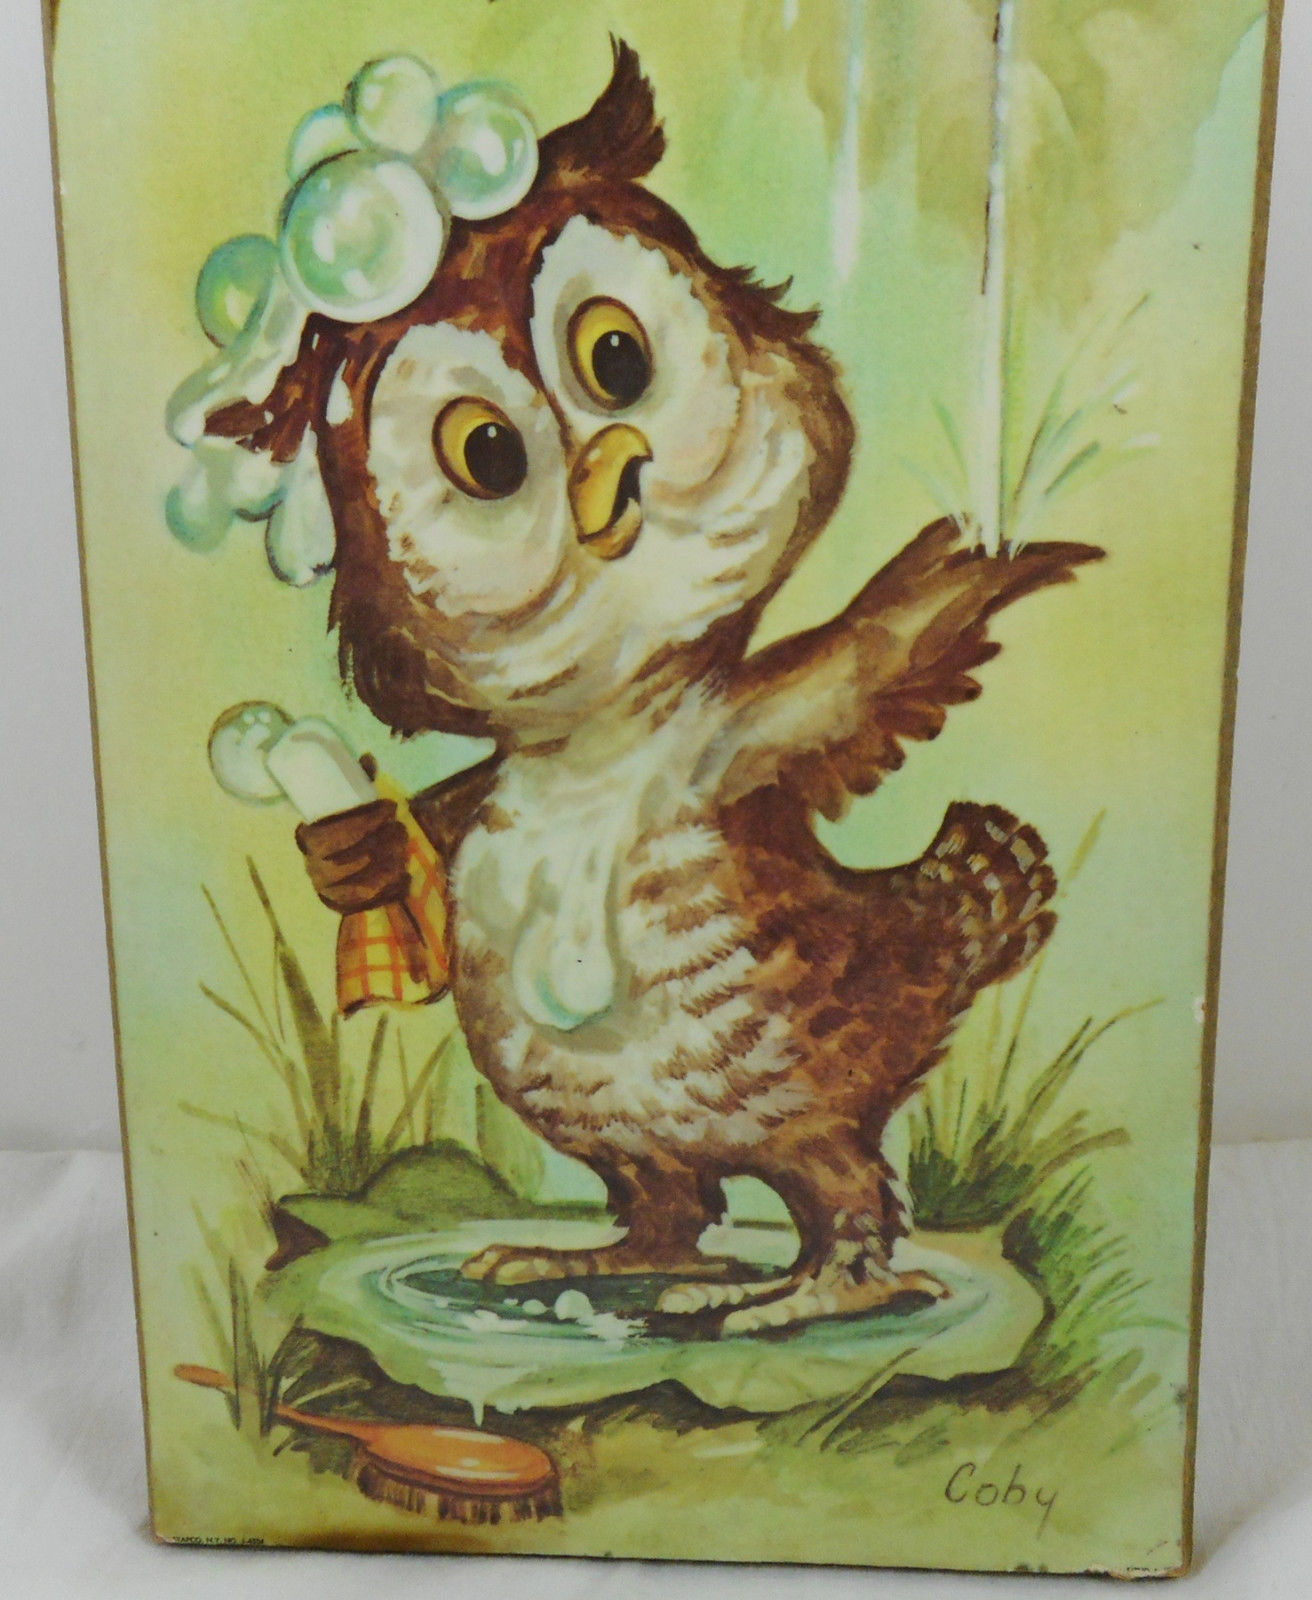 Vintage Coby Bathing Owl Print Mounted On Wood Plaque Picture Hanging Nursery image 2